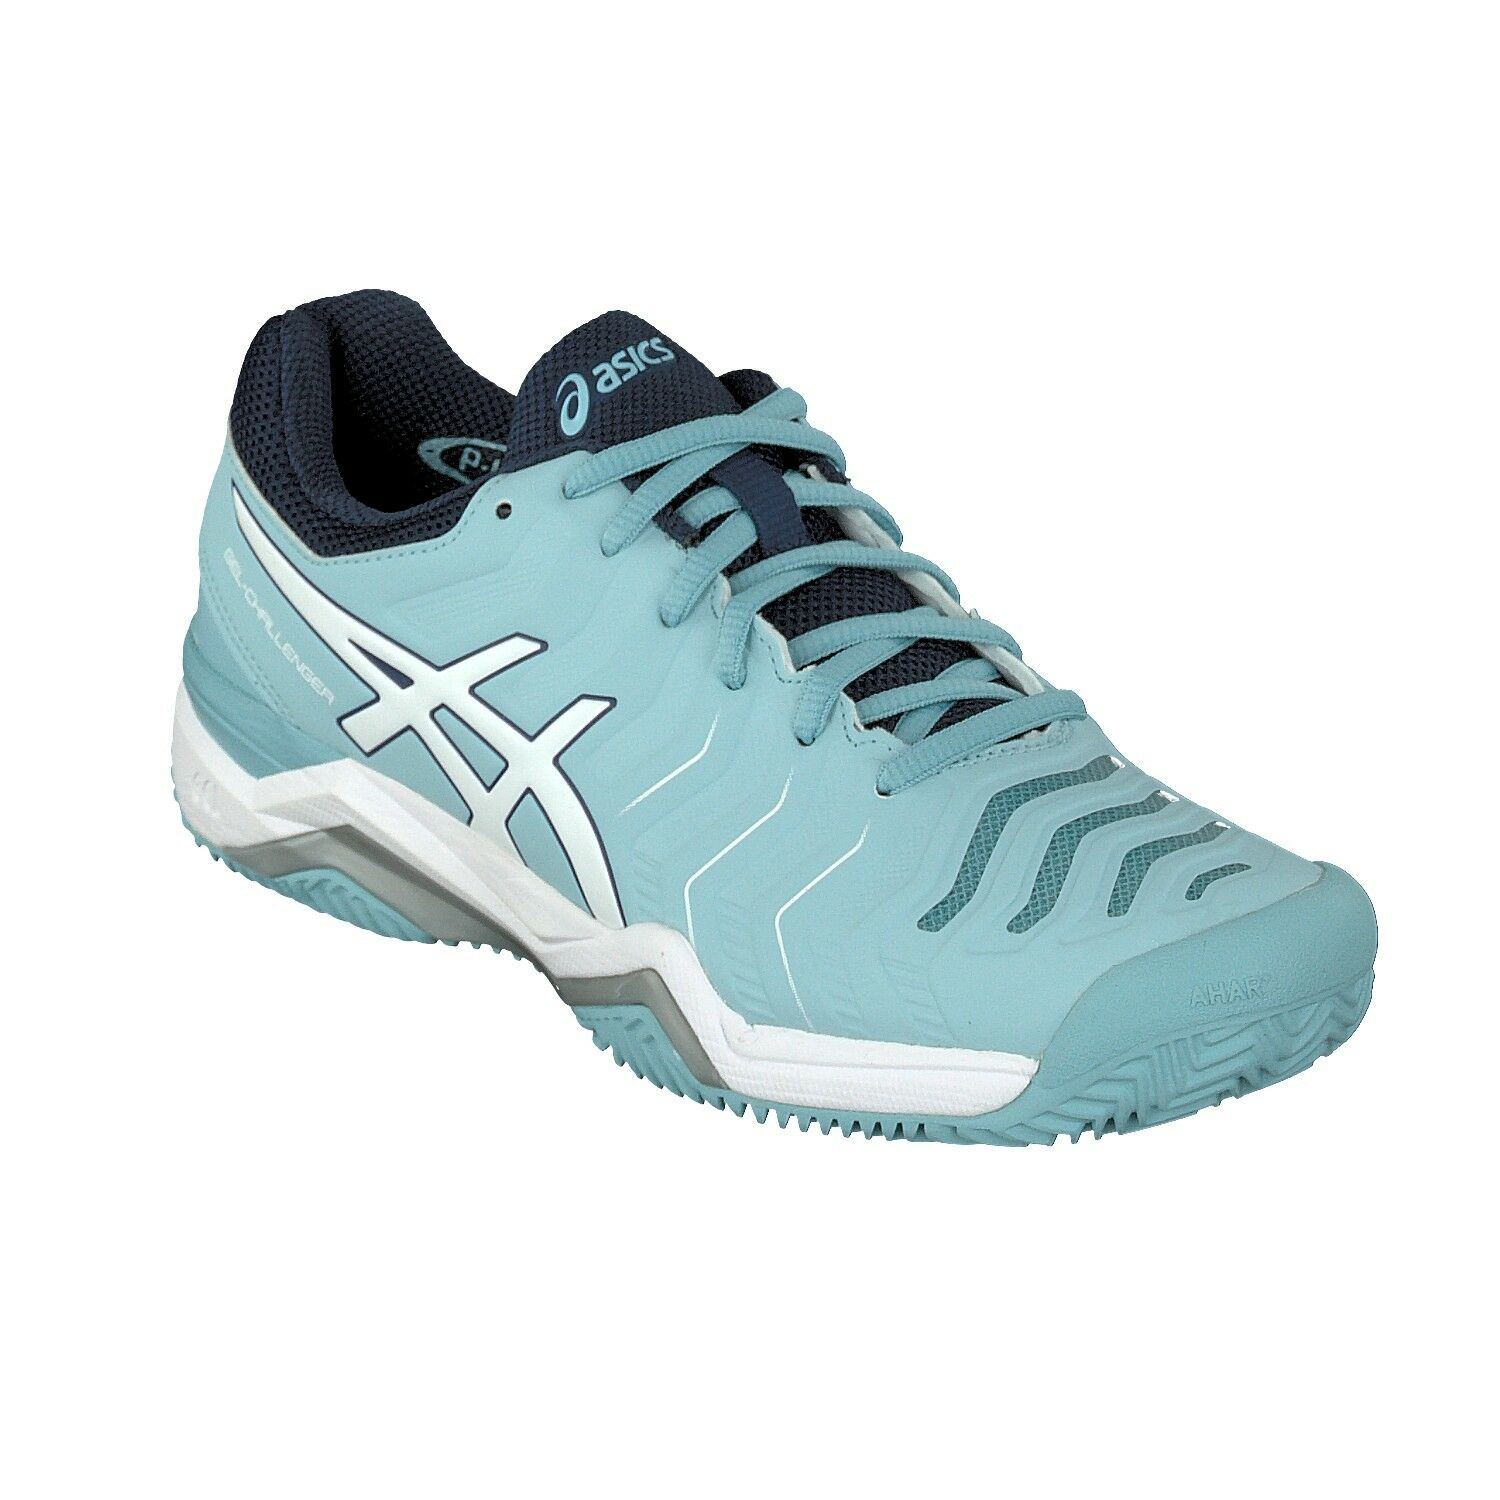 Asics Tennis shoes Gel-Challenger Clay Ladies Sand Court shoes Trainers Tennis